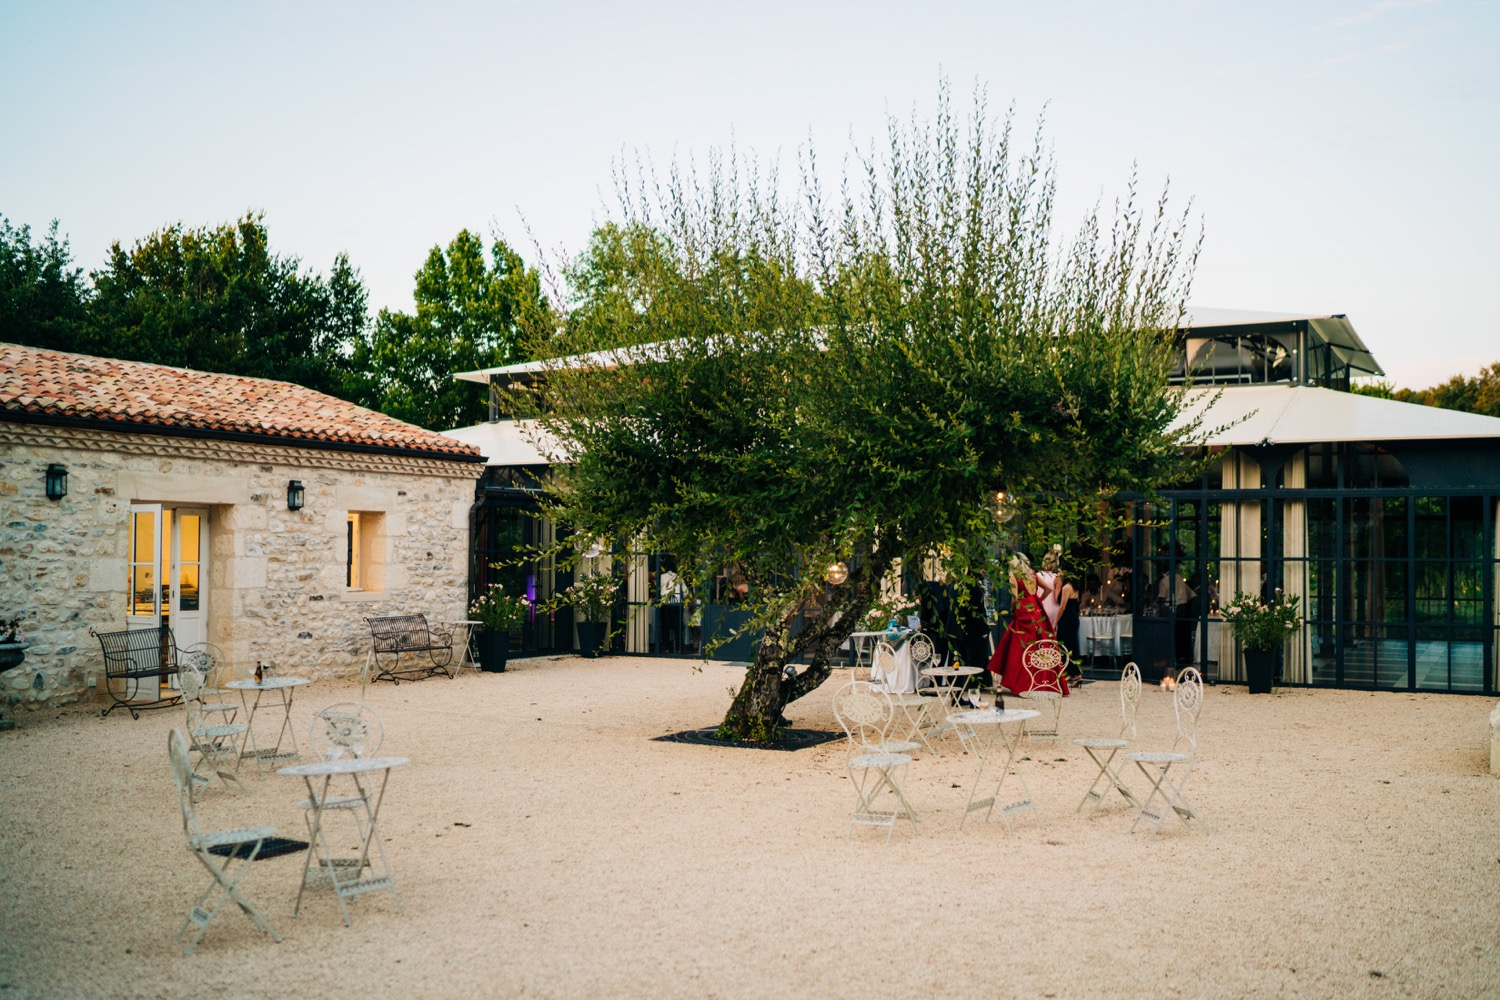 The courtyard of a beautiful wedding venue in Europe called Domaine La Fauconnie in France.